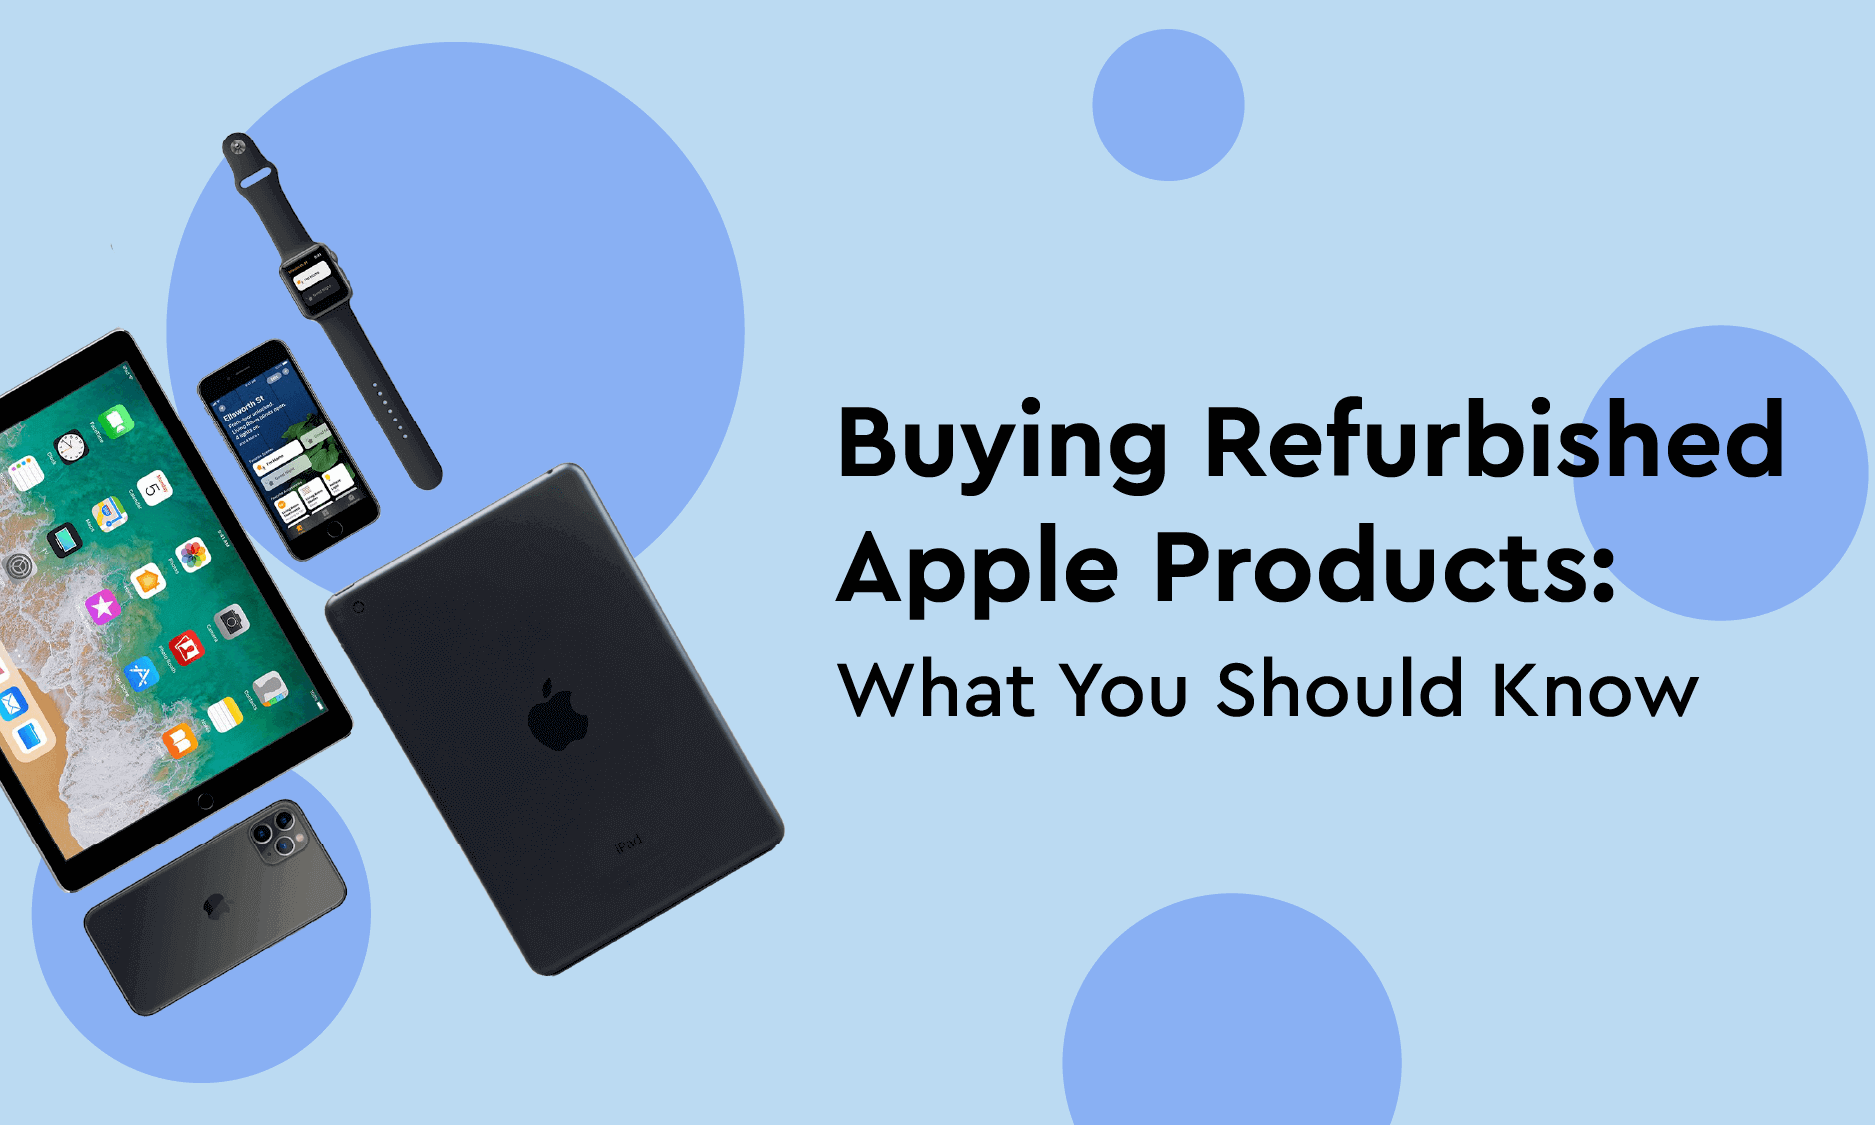 Buying Refurbished Apple Products: What You Should Know